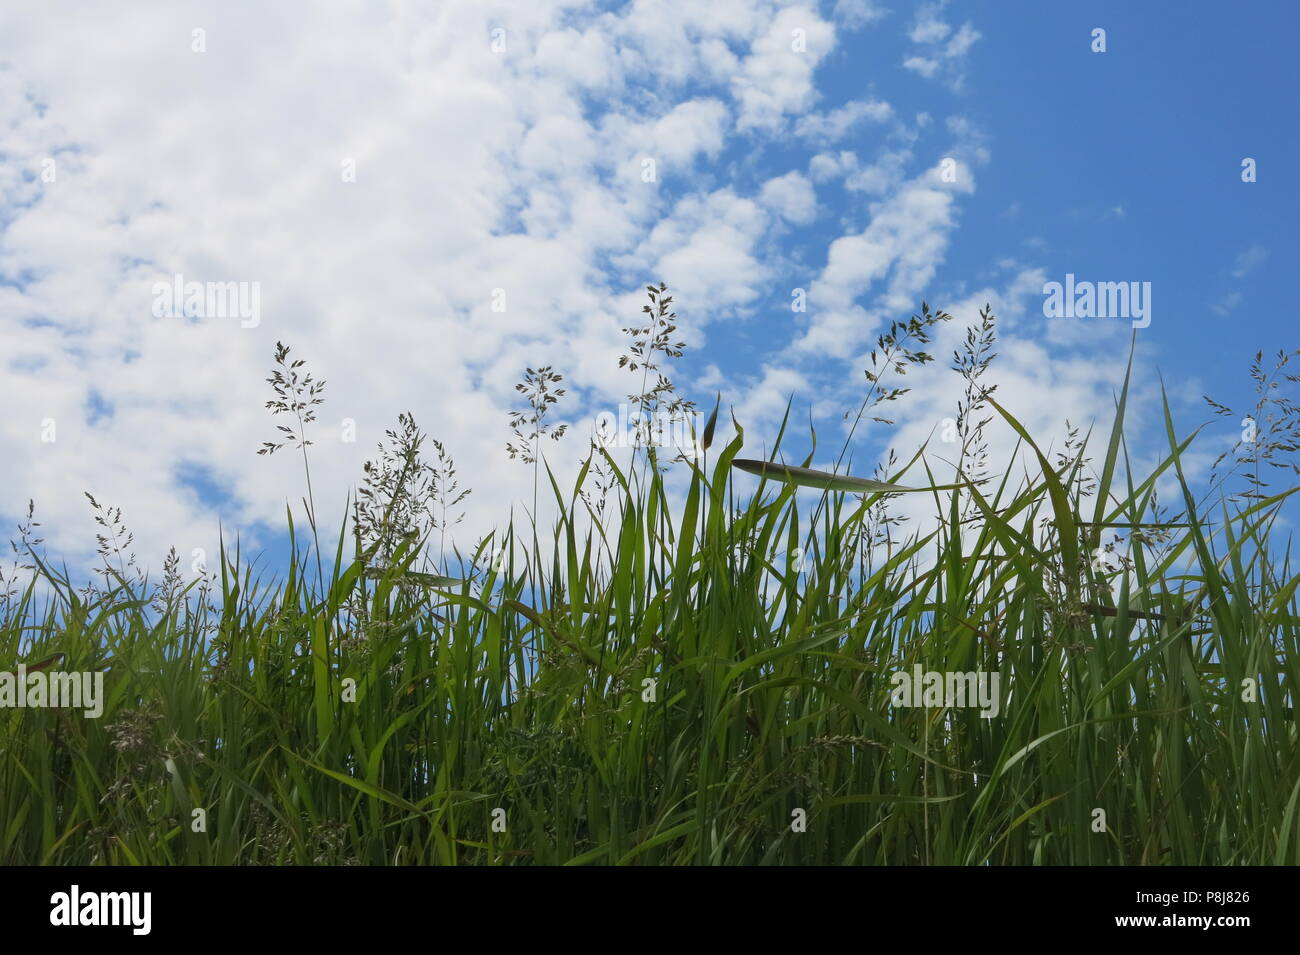 A landscape picture of tall green grasses reaching upwards to whispy, white clouds in a blue, summer sky - Stock Image